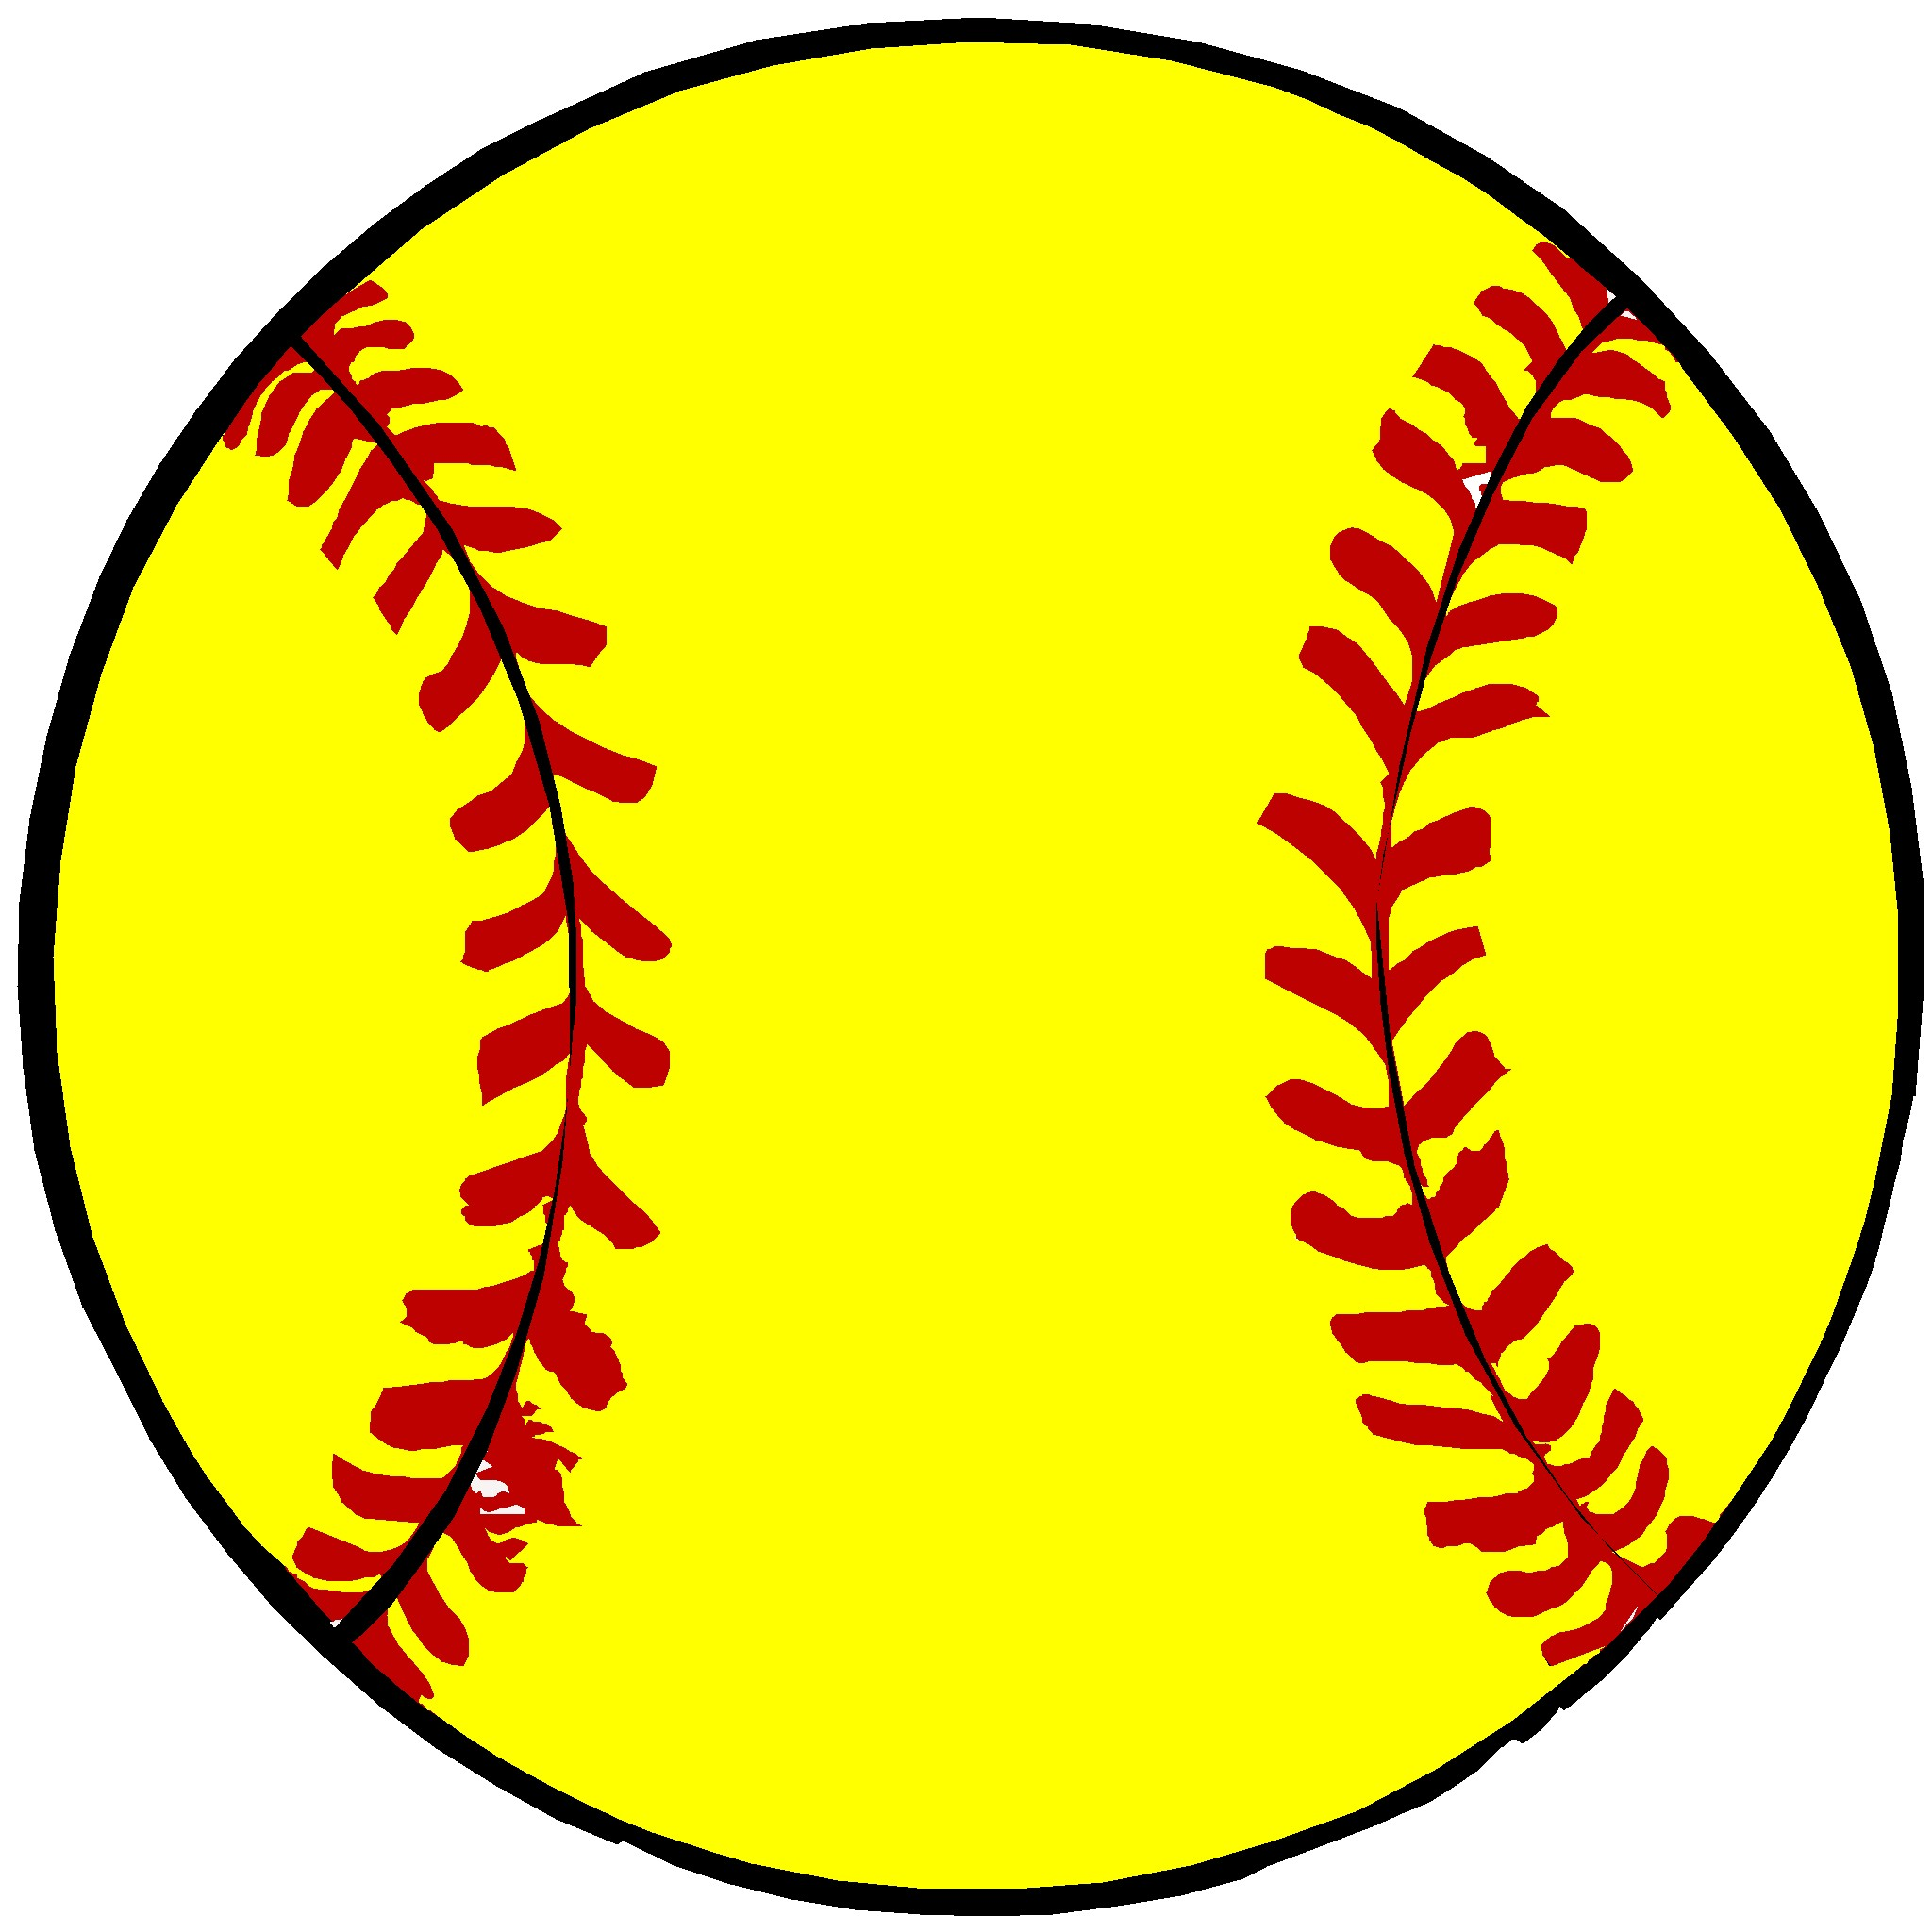 Free Softball Bat Clipart, Download Free Clip Art, Free Clip.